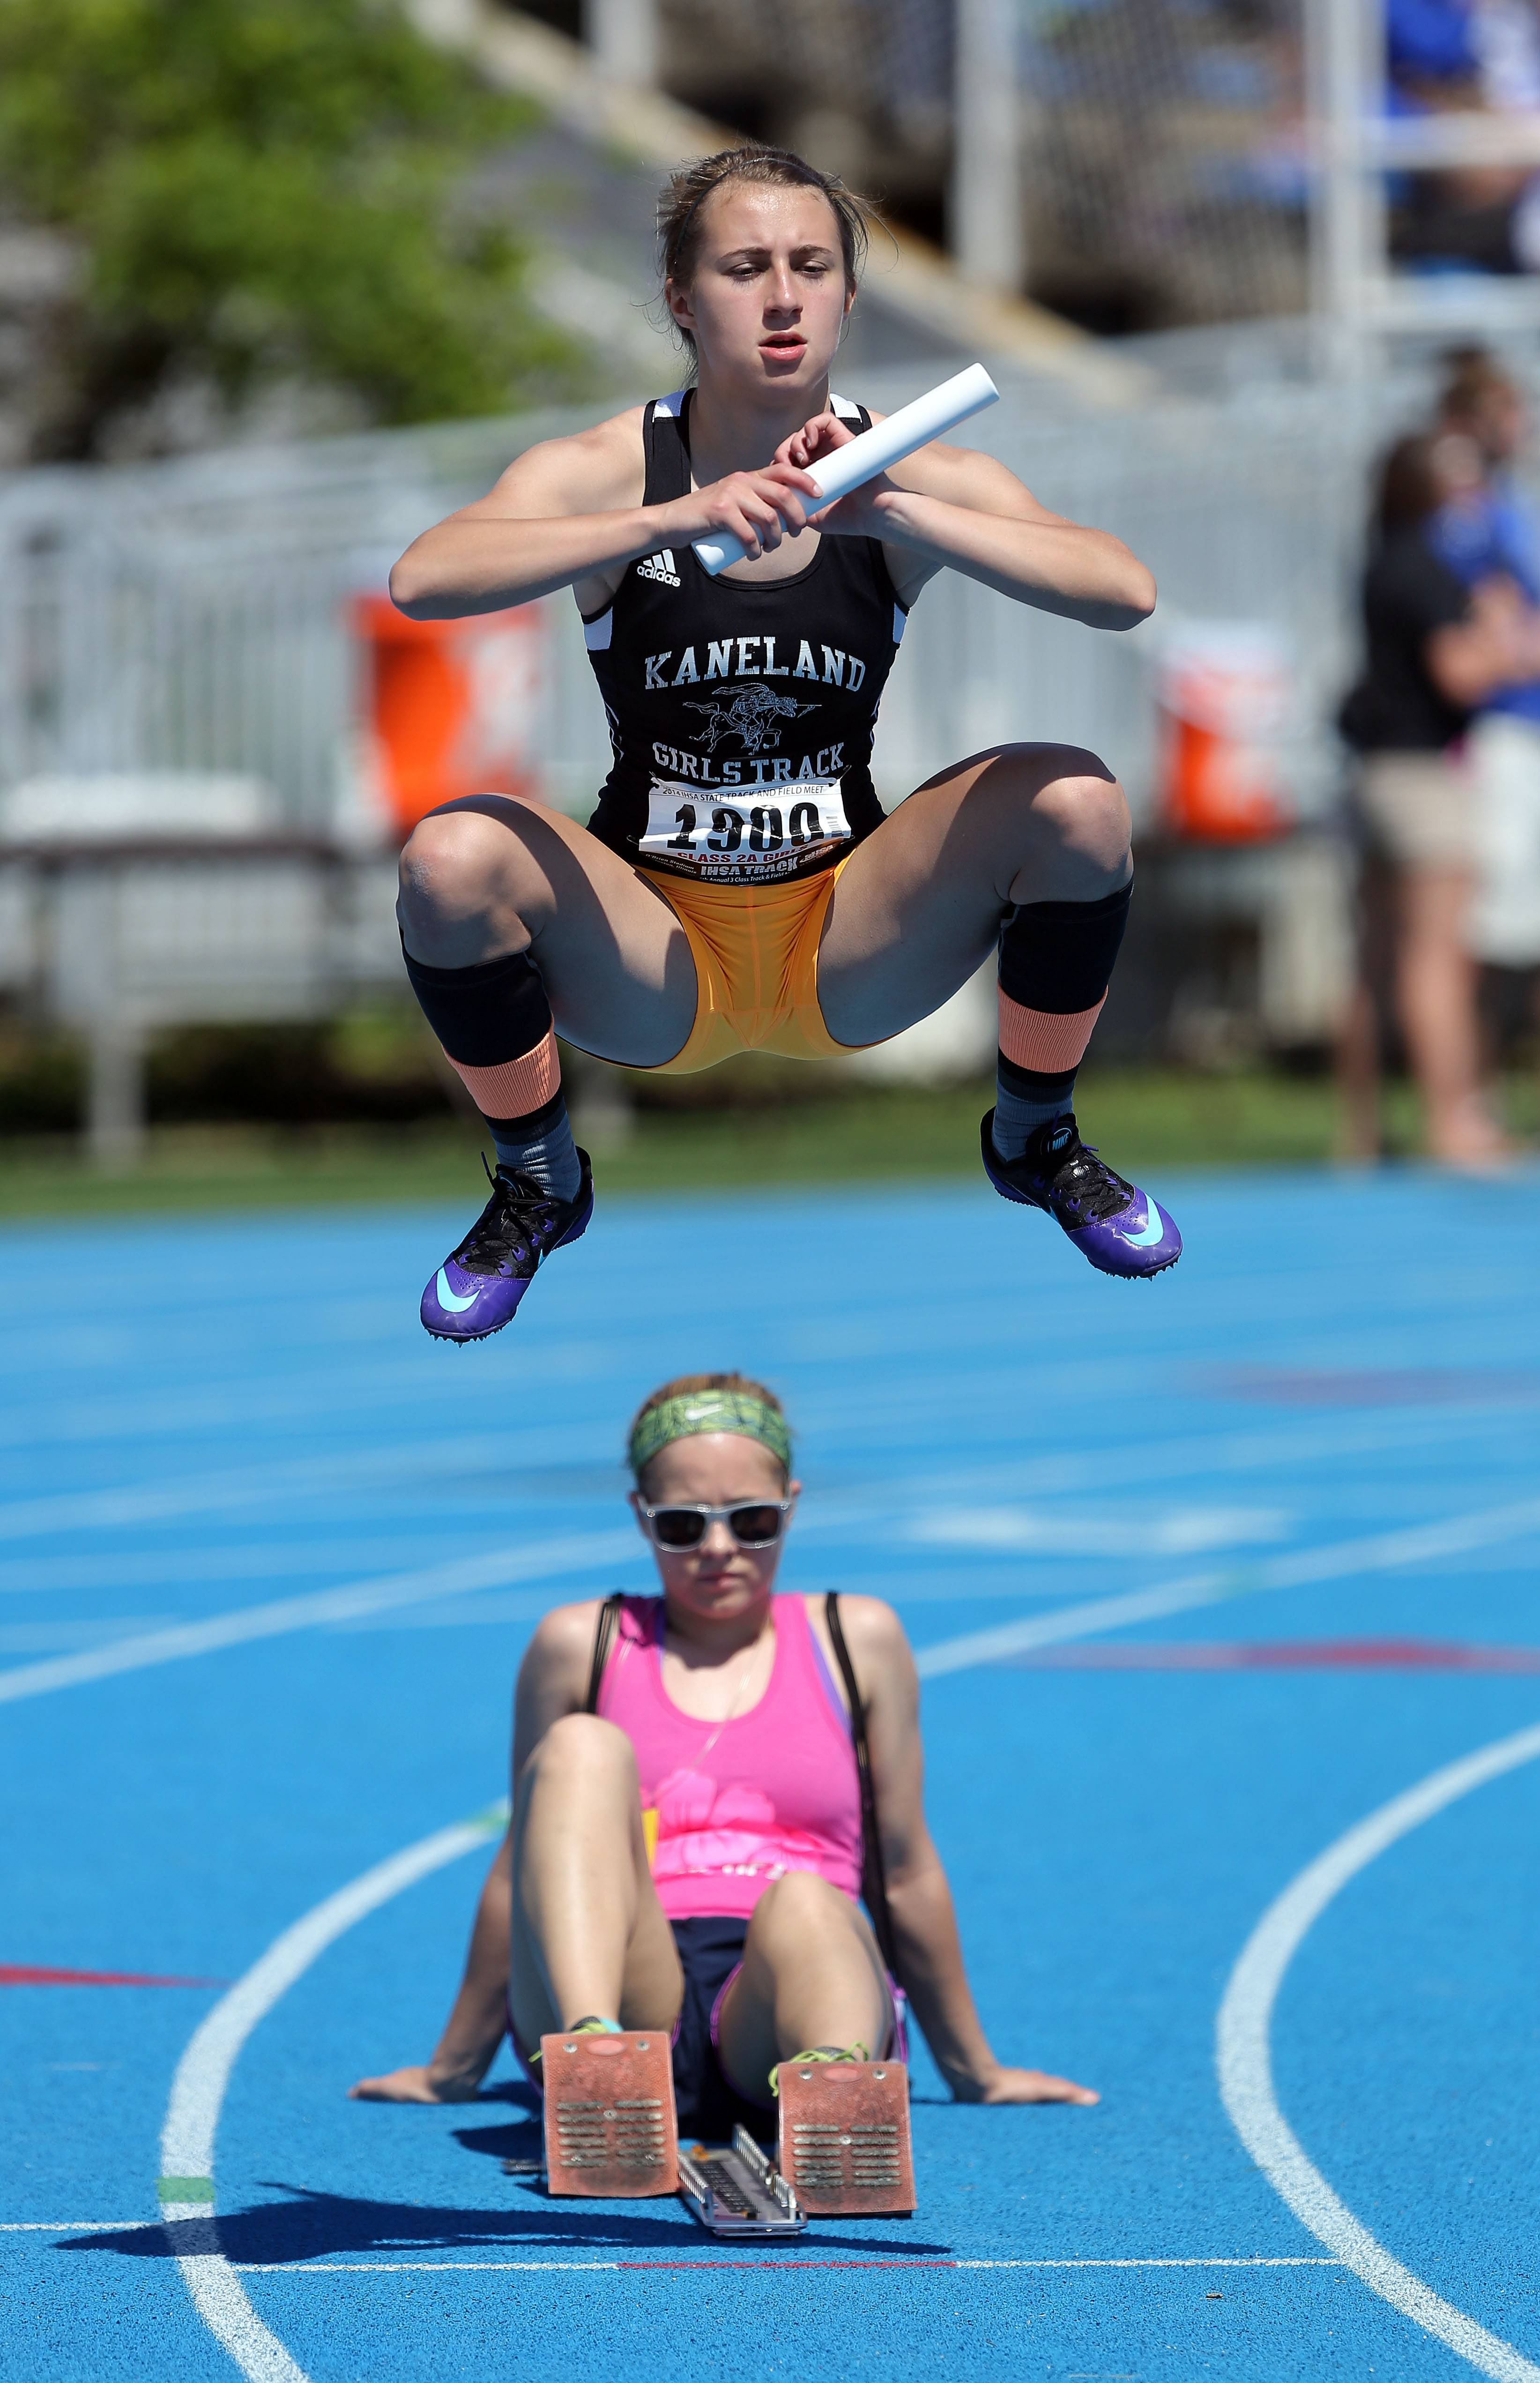 Kaneland's Olivia Galor warms up before the 4x200-meter relay during the prelims of the girls track and field state meet at Eastern Illinois University in Charleston Friday.